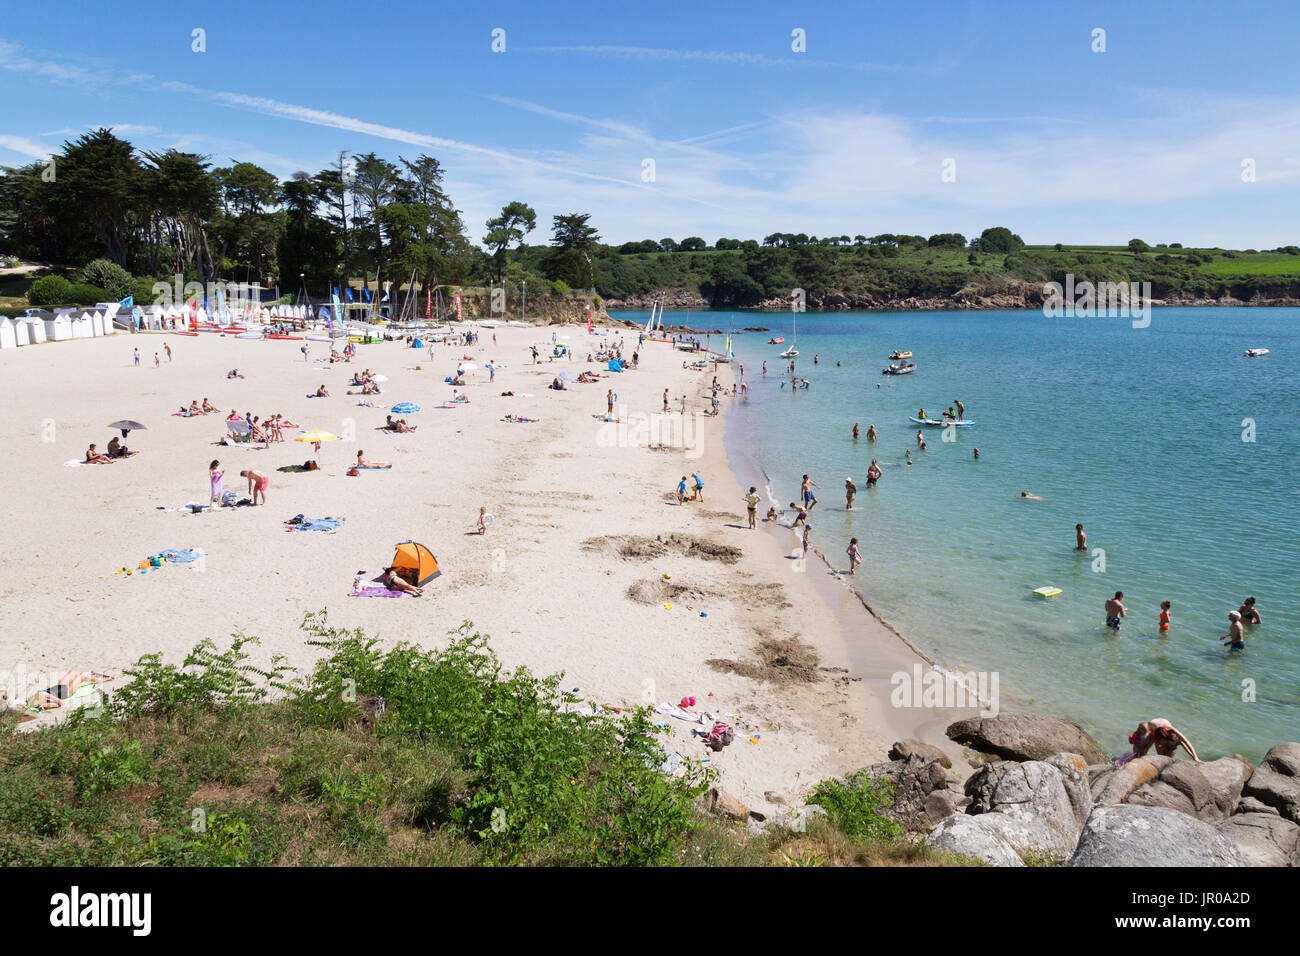 France beach - tourists sunbathing on Port Manec'h beach, Finistere, Brittany northern France Europe - Stock Image